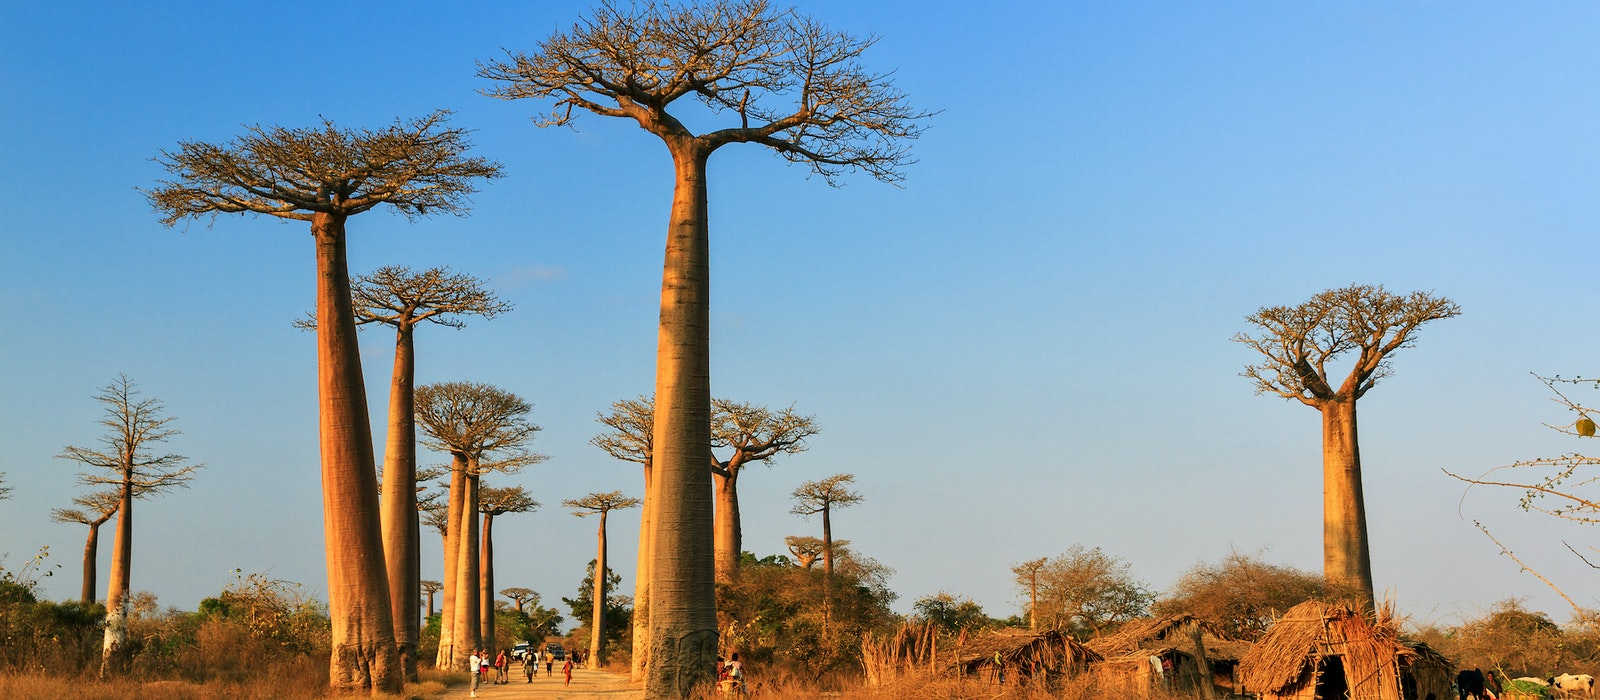 Centuries-old trees line Madagascar's Avenue of the Baobabs.